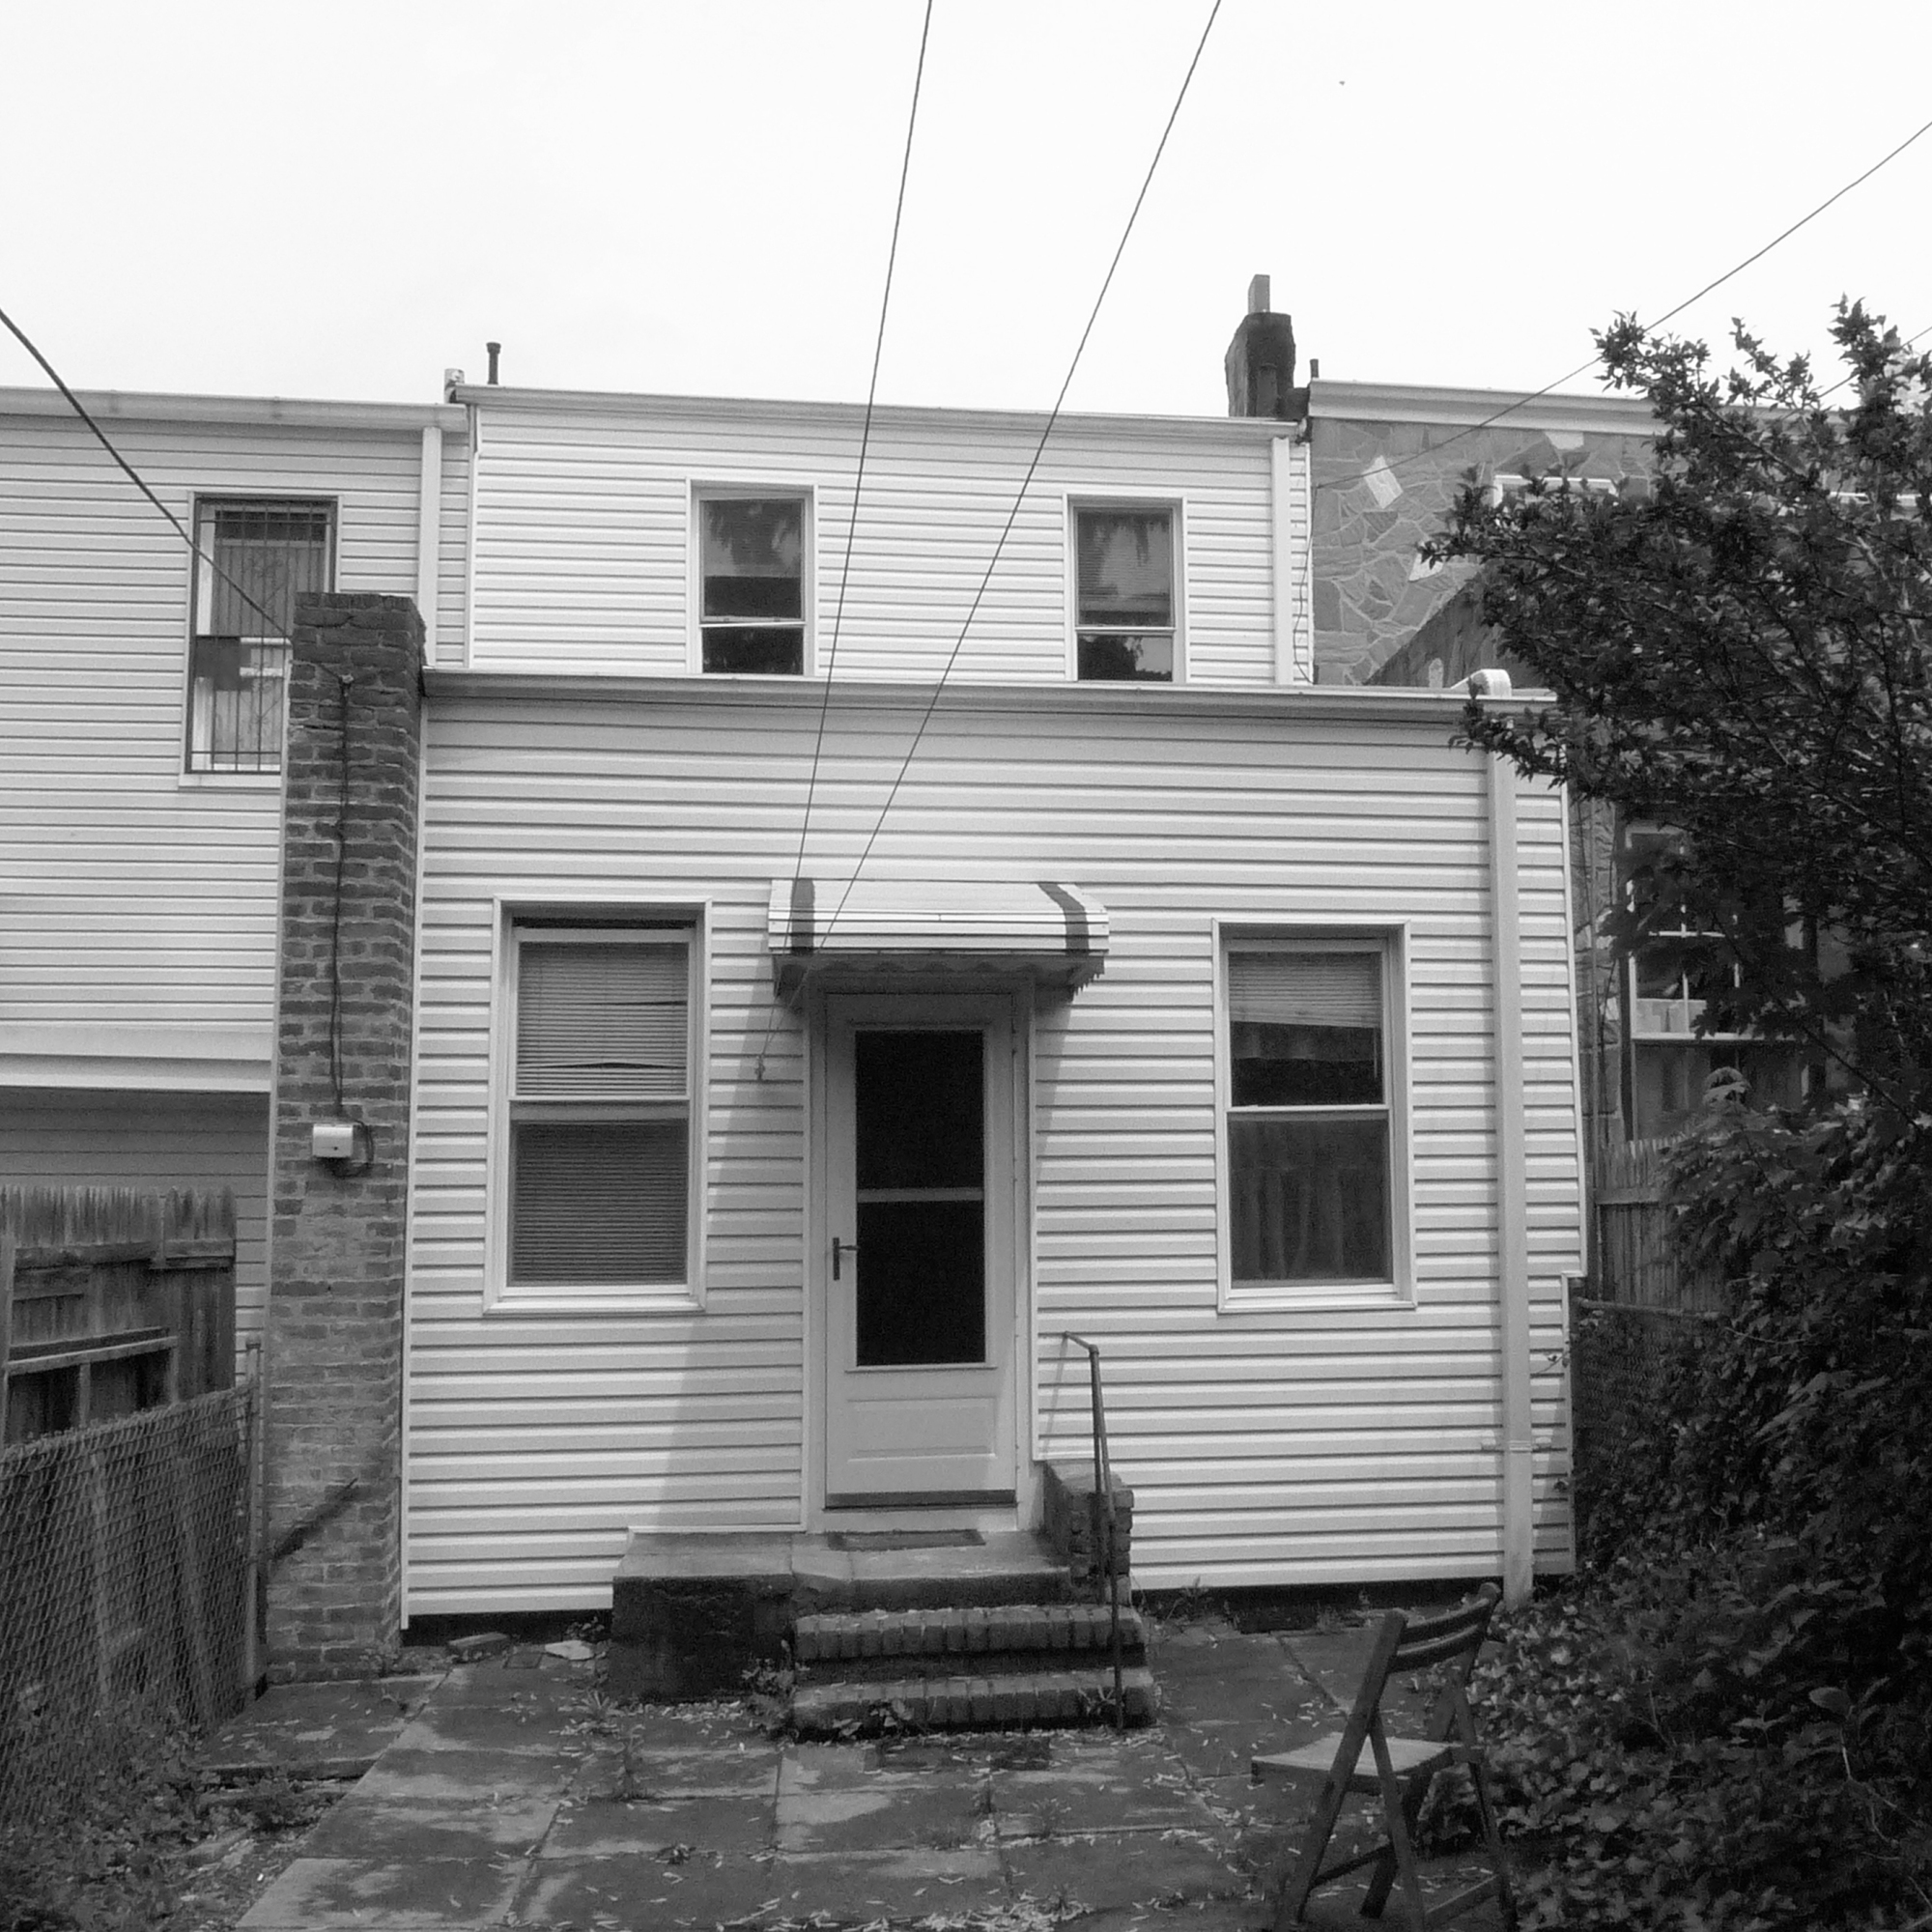 54f79625e58ecee84d0001c1_brooklyn-row-house-office-of-architecture_02_before_facade